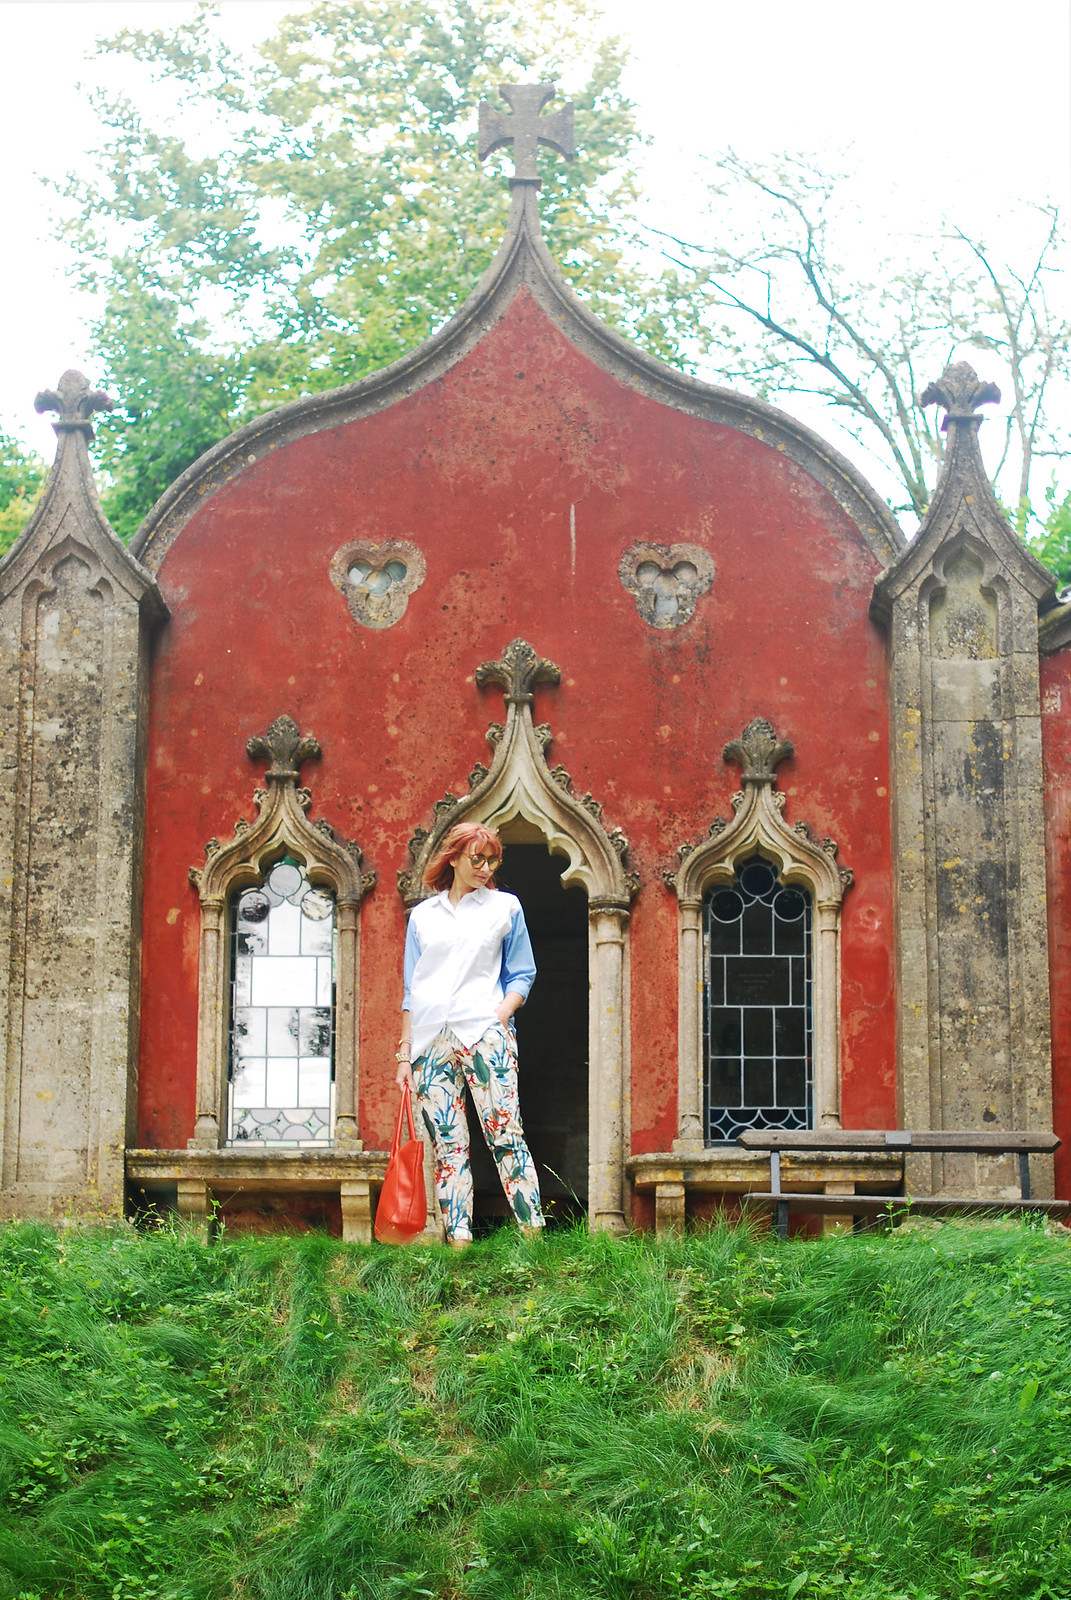 Summer style: Two-tone button up shirt, tropical print pants, orange tote, embellished sneakers (Painswick Rococo Garden, the Cotswolds) | Not Dressed As Lamb, over 40 style